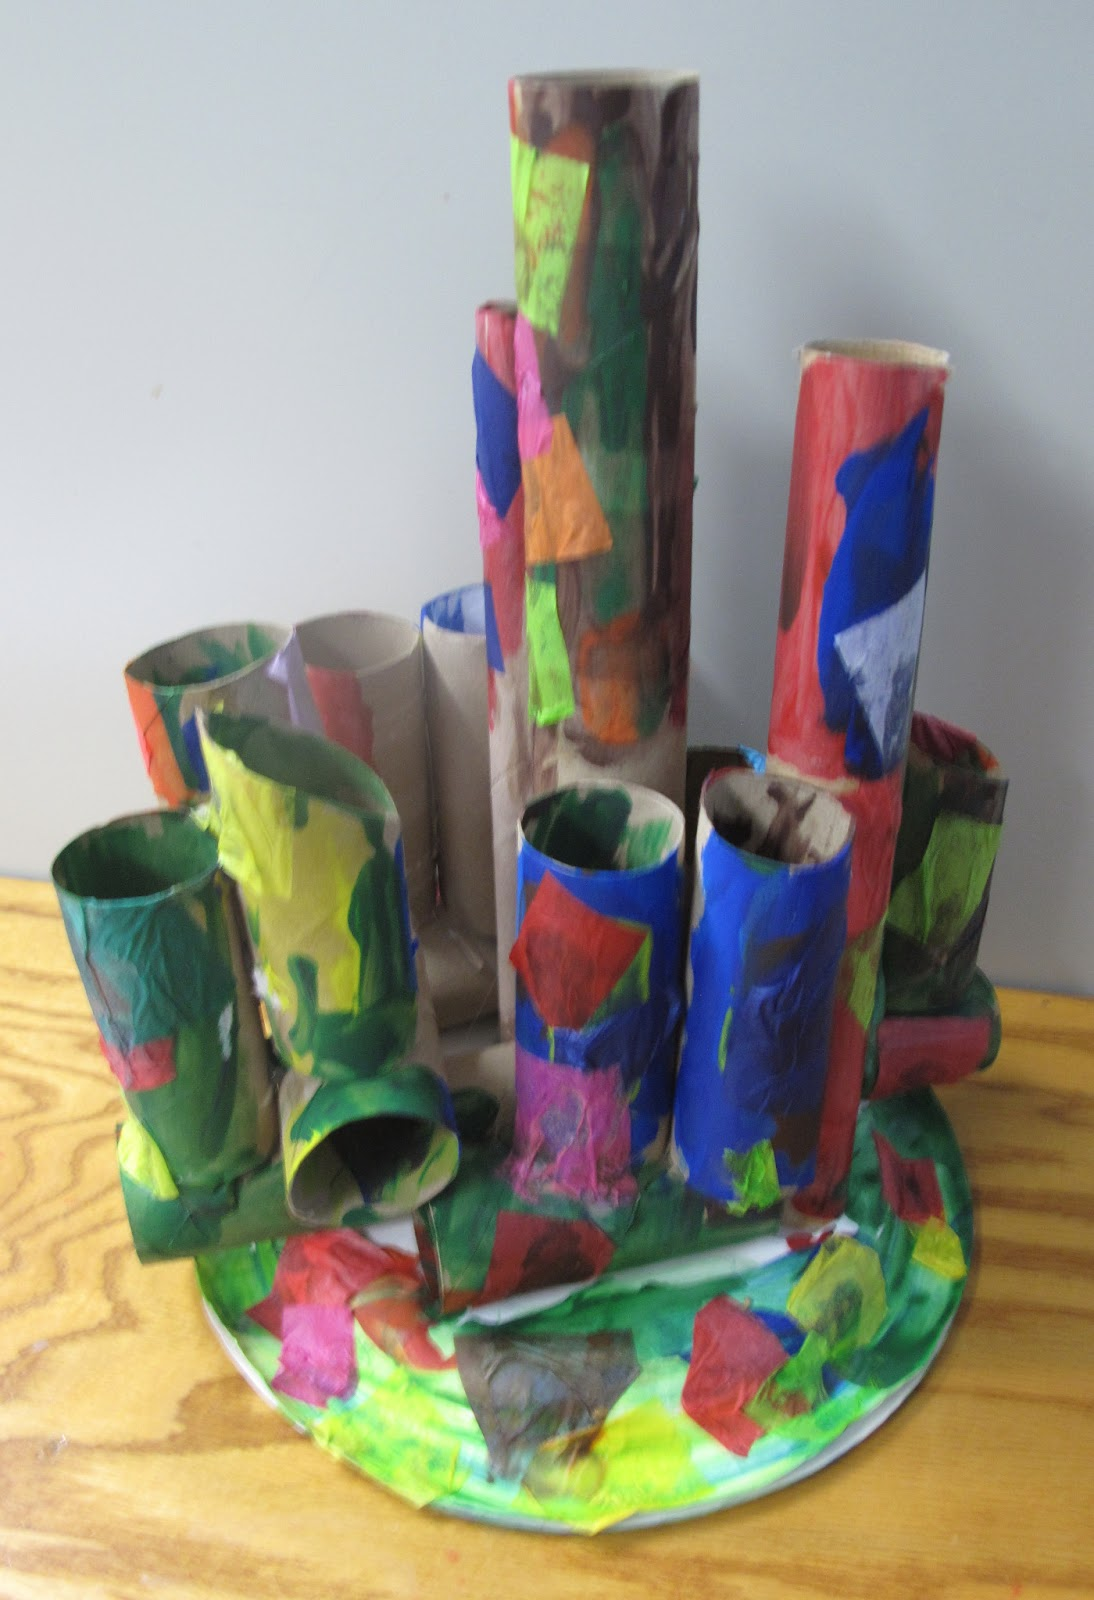 3d art projects for preschoolers metamora community preschool sculpture unit 2013 576